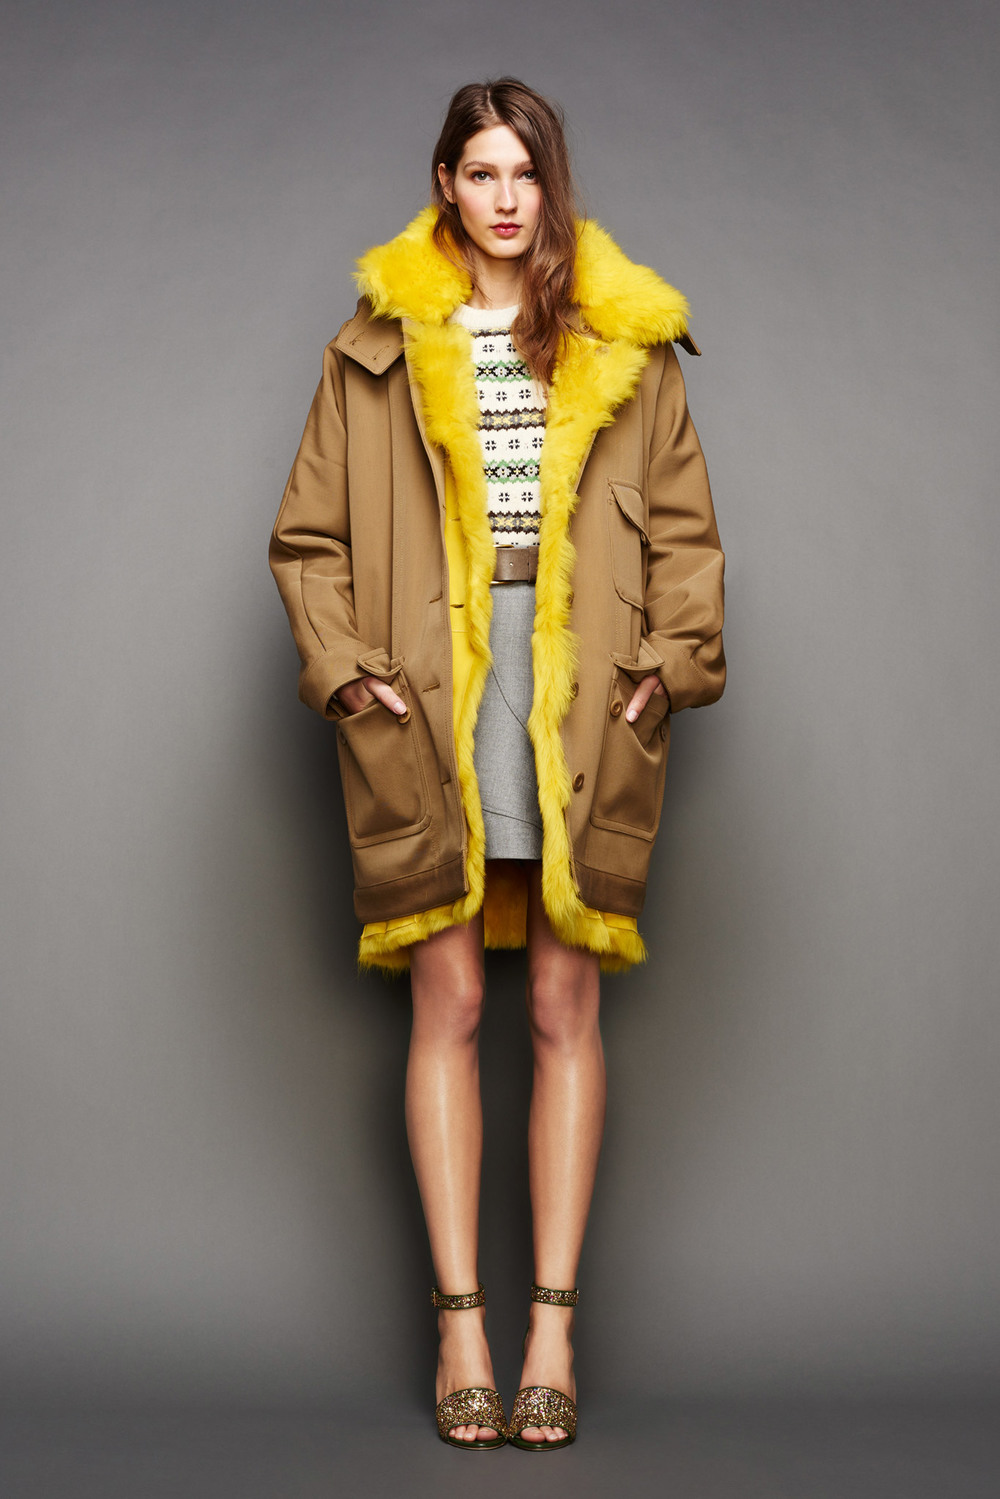 jcrew fall 2015 jacket.jpg